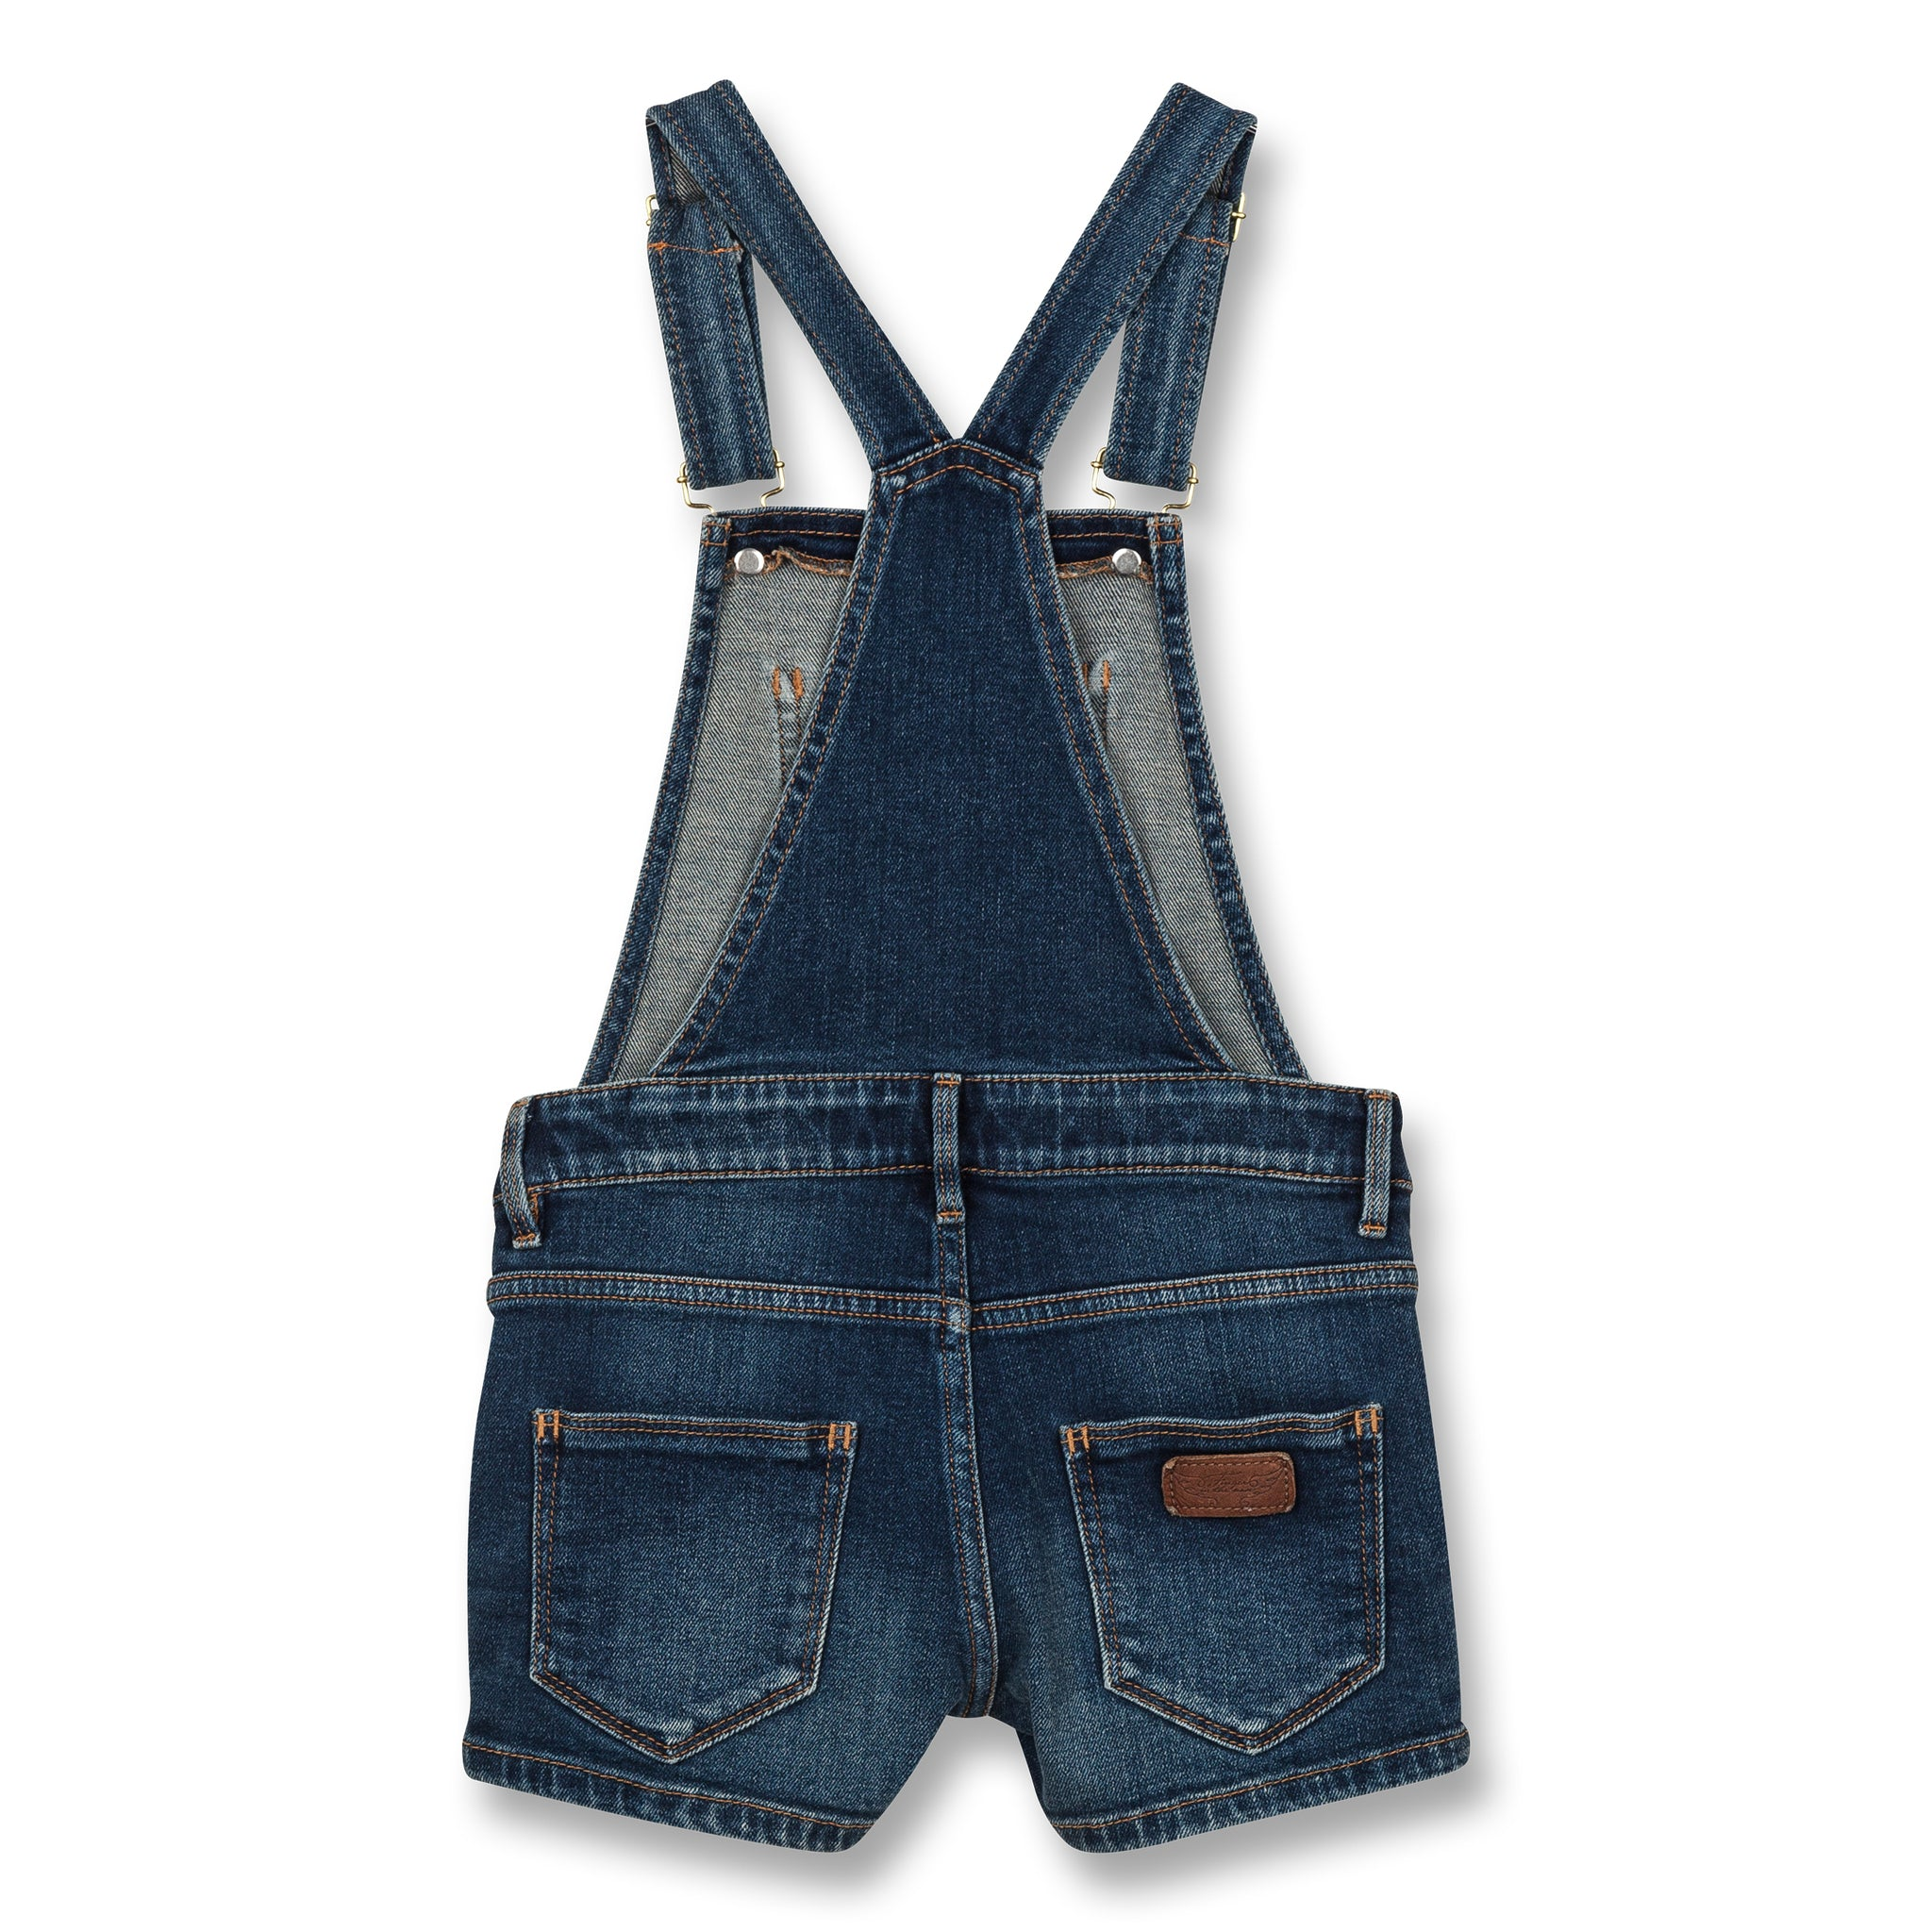 YUMI Authentic Blue - Denim Short Overall 2